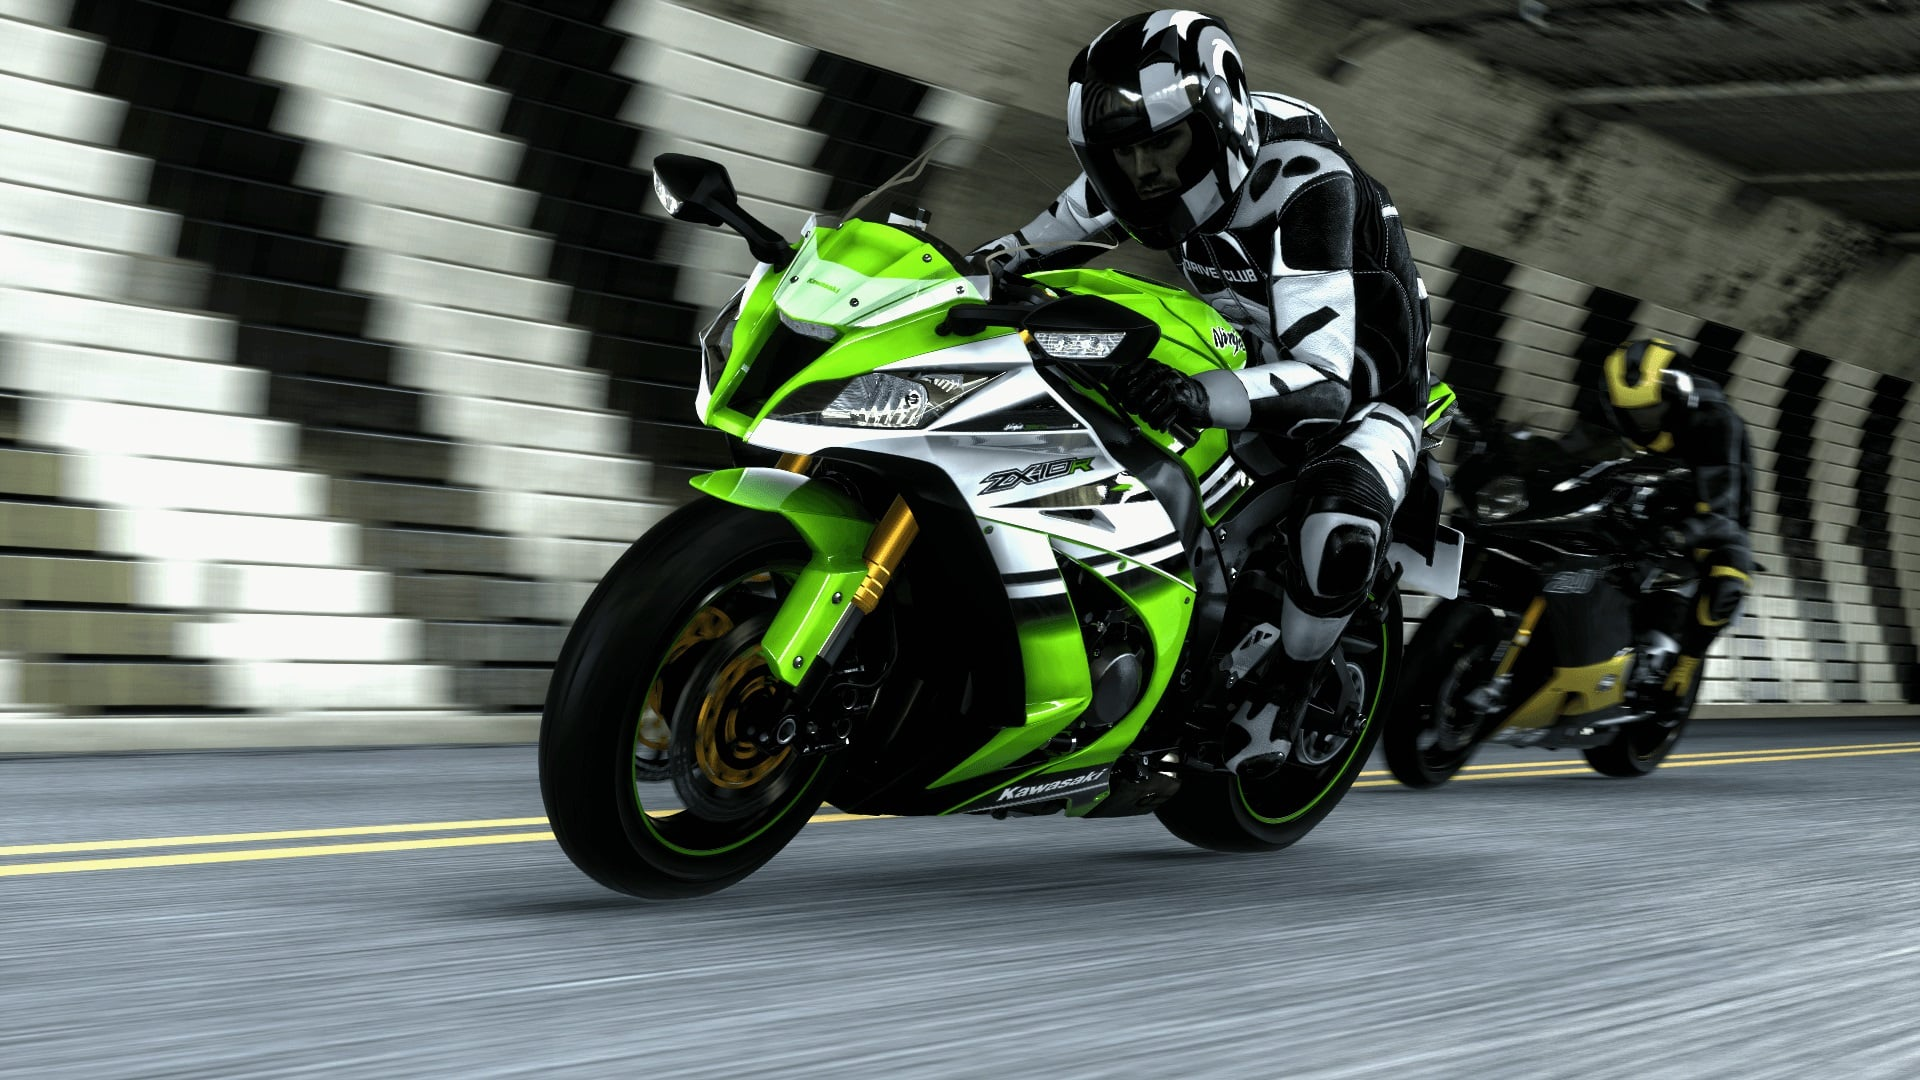 kawasaki ninja zx10r wallpapers hd. Black Bedroom Furniture Sets. Home Design Ideas